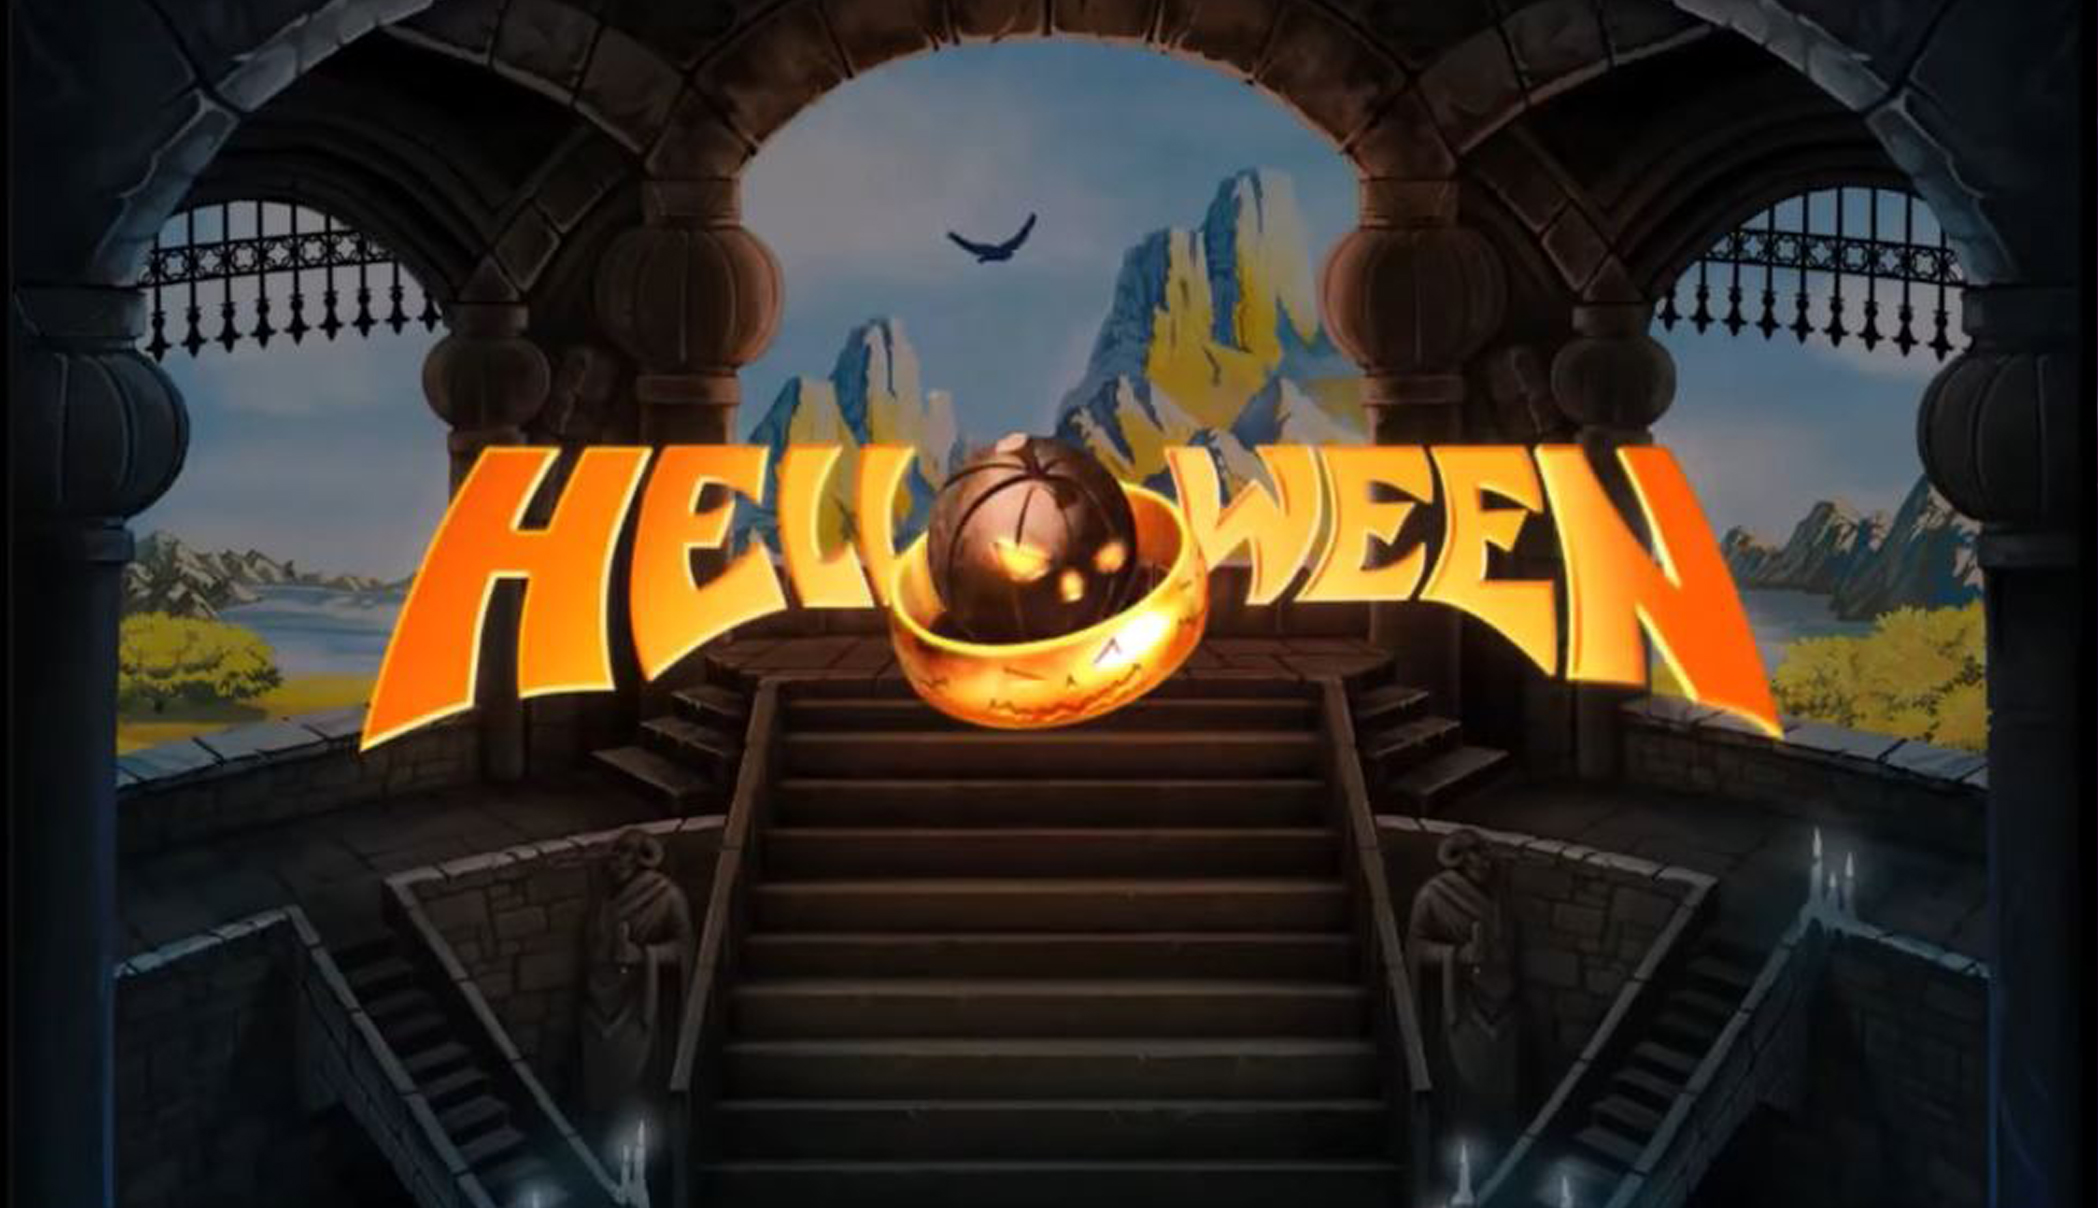 Helloween REVIEW